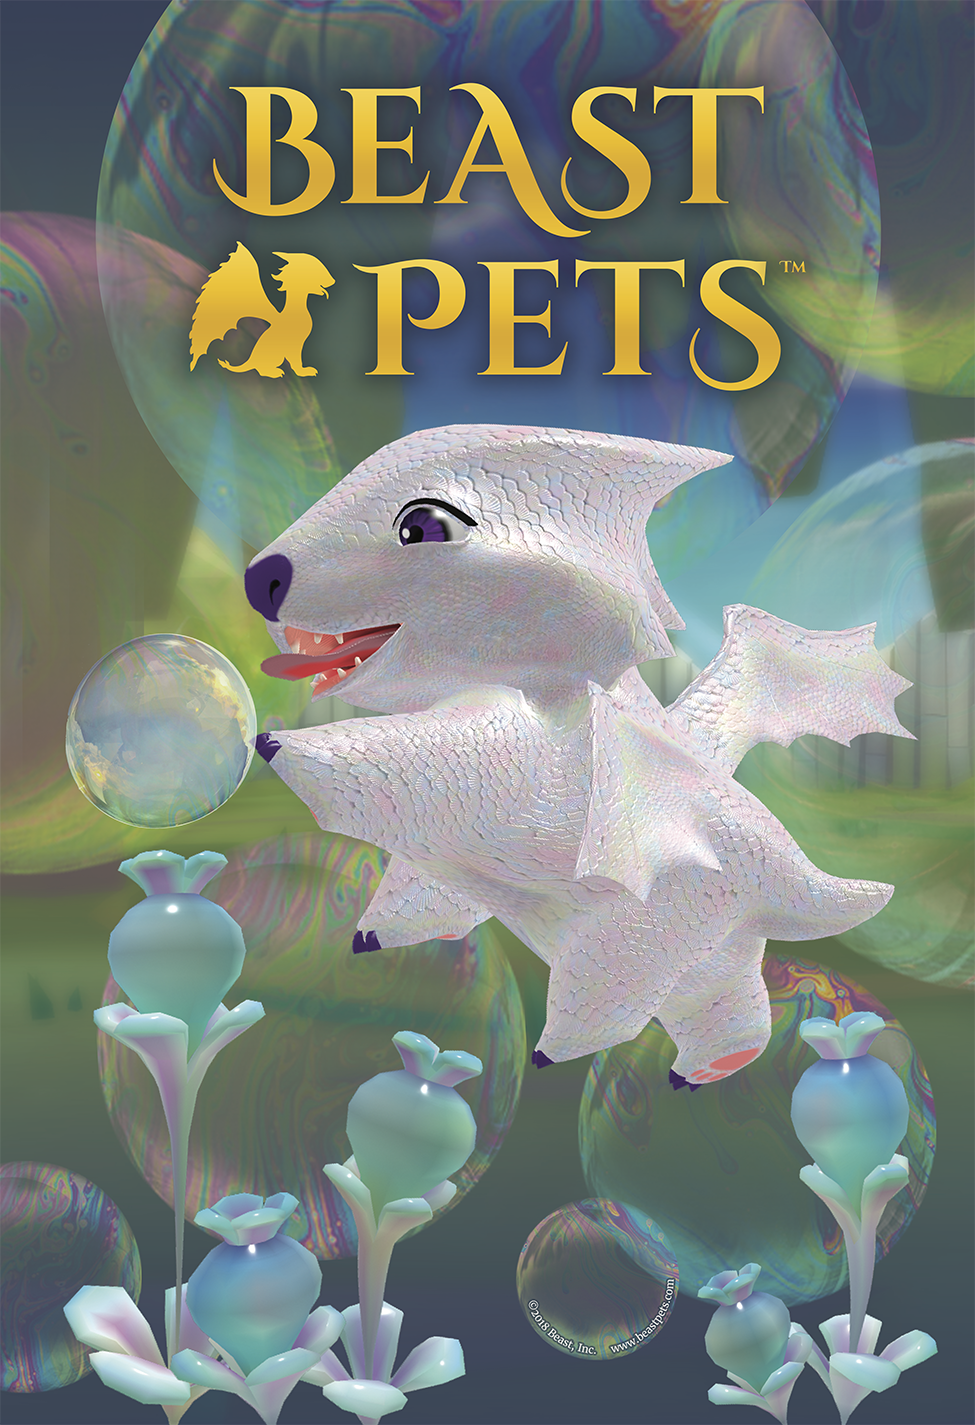 beastpets_poster1-2_Opal_thumbnail.png